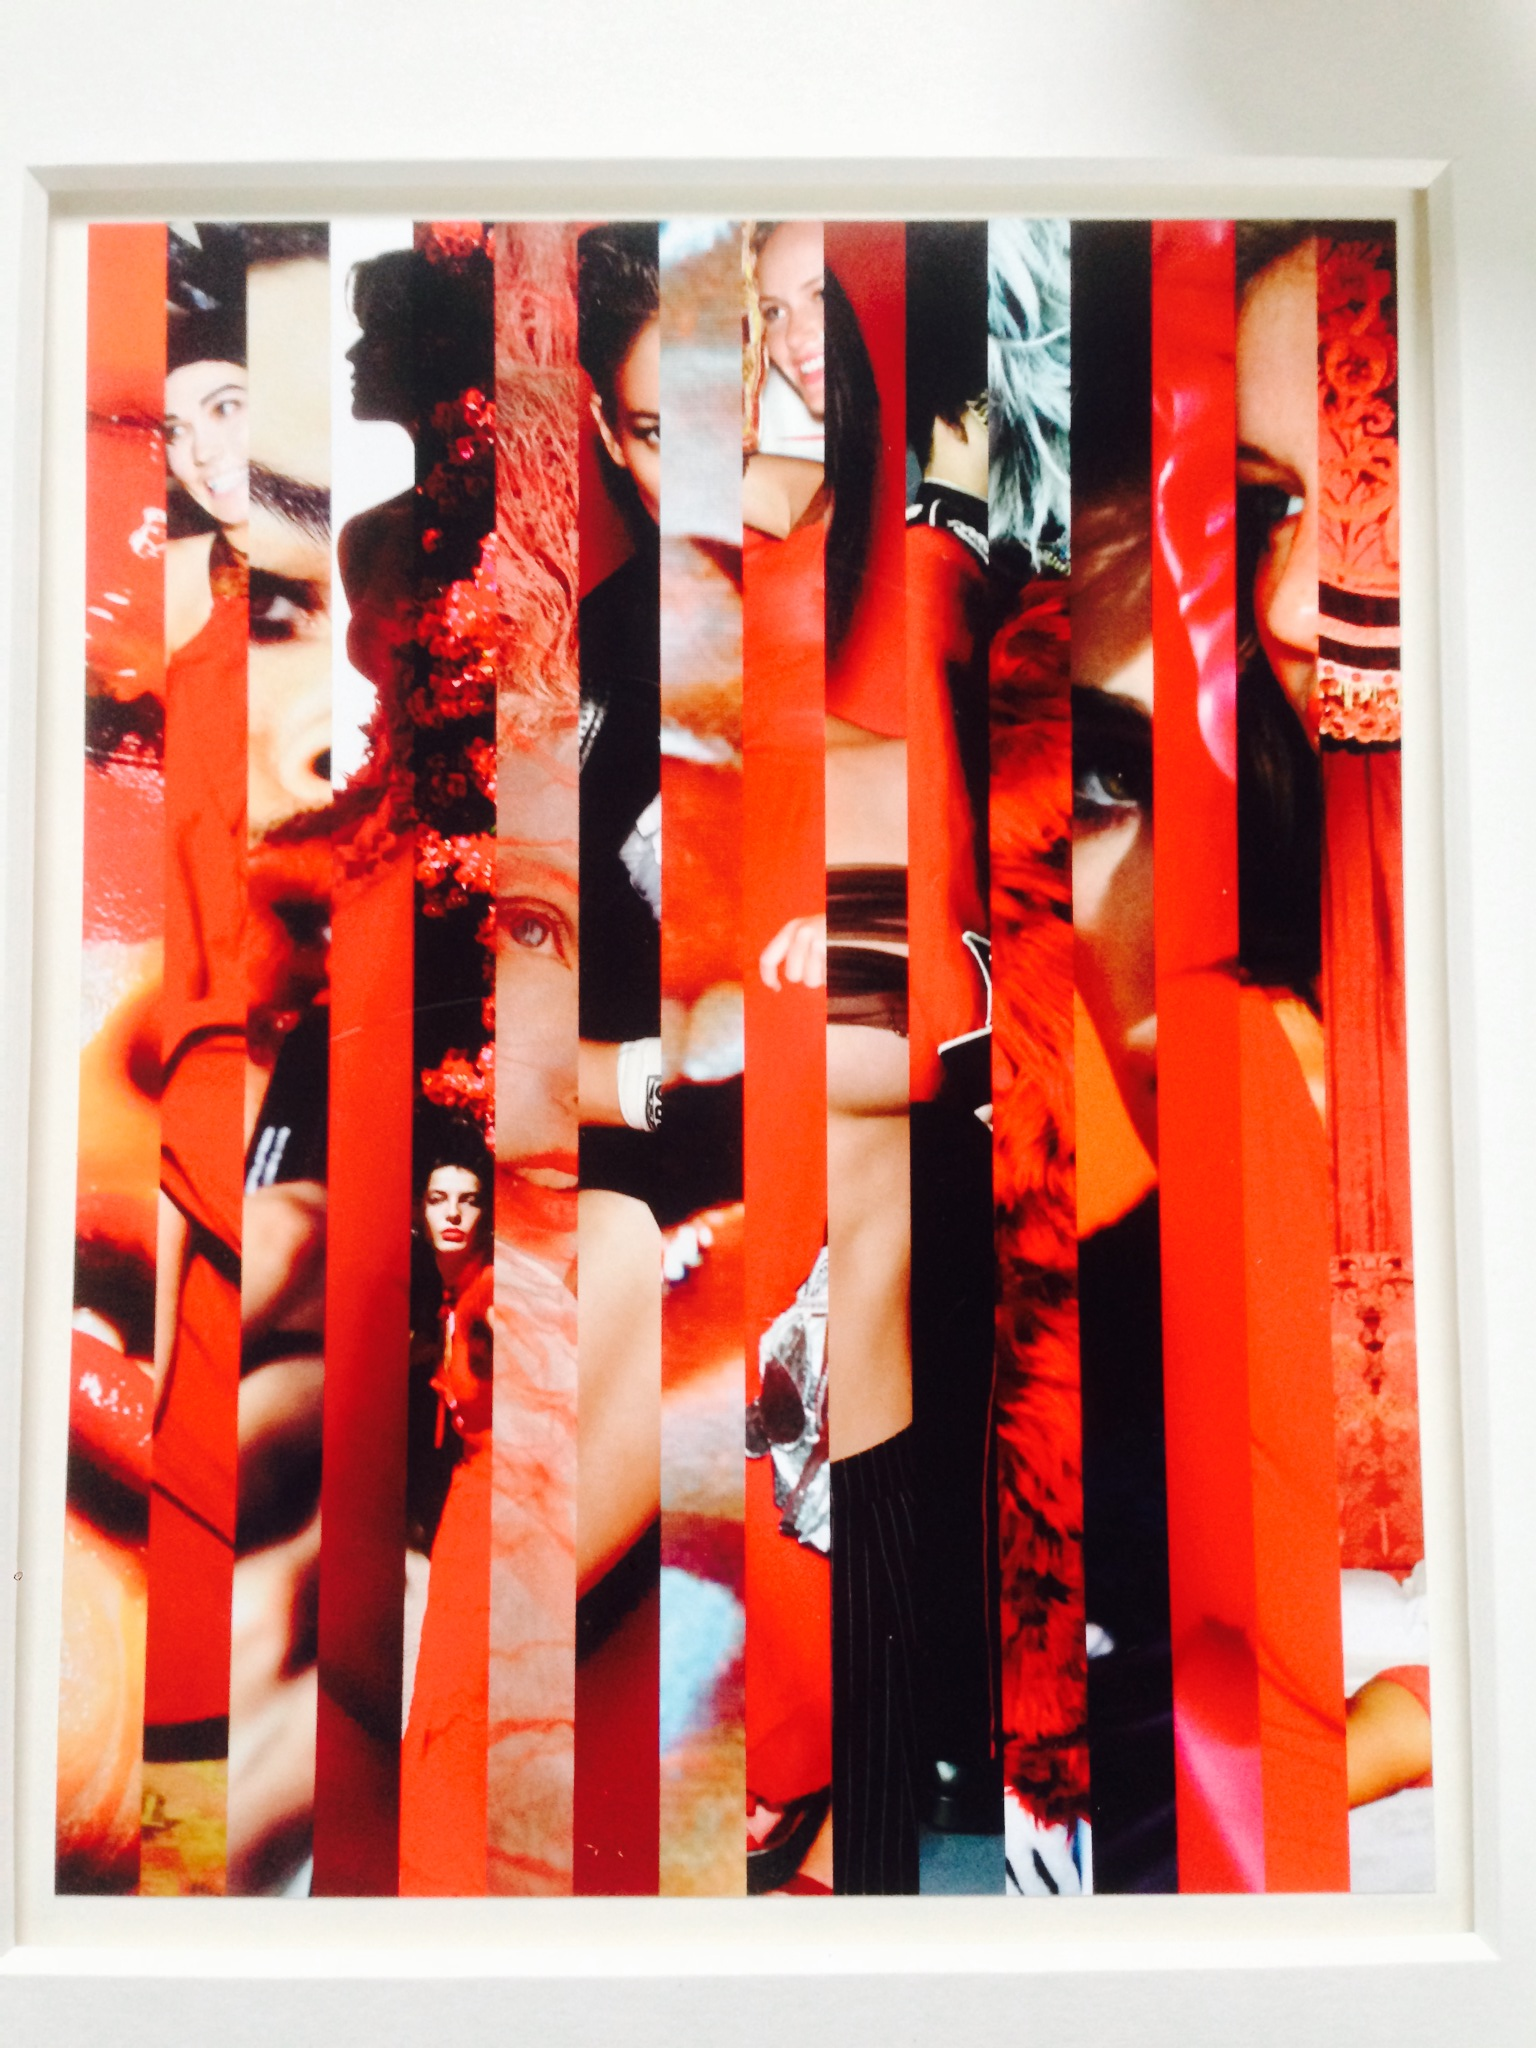 Lot 51 - Mario Testino  Vertical collage of his seminal photographs in red tones Signed on the back 26 x